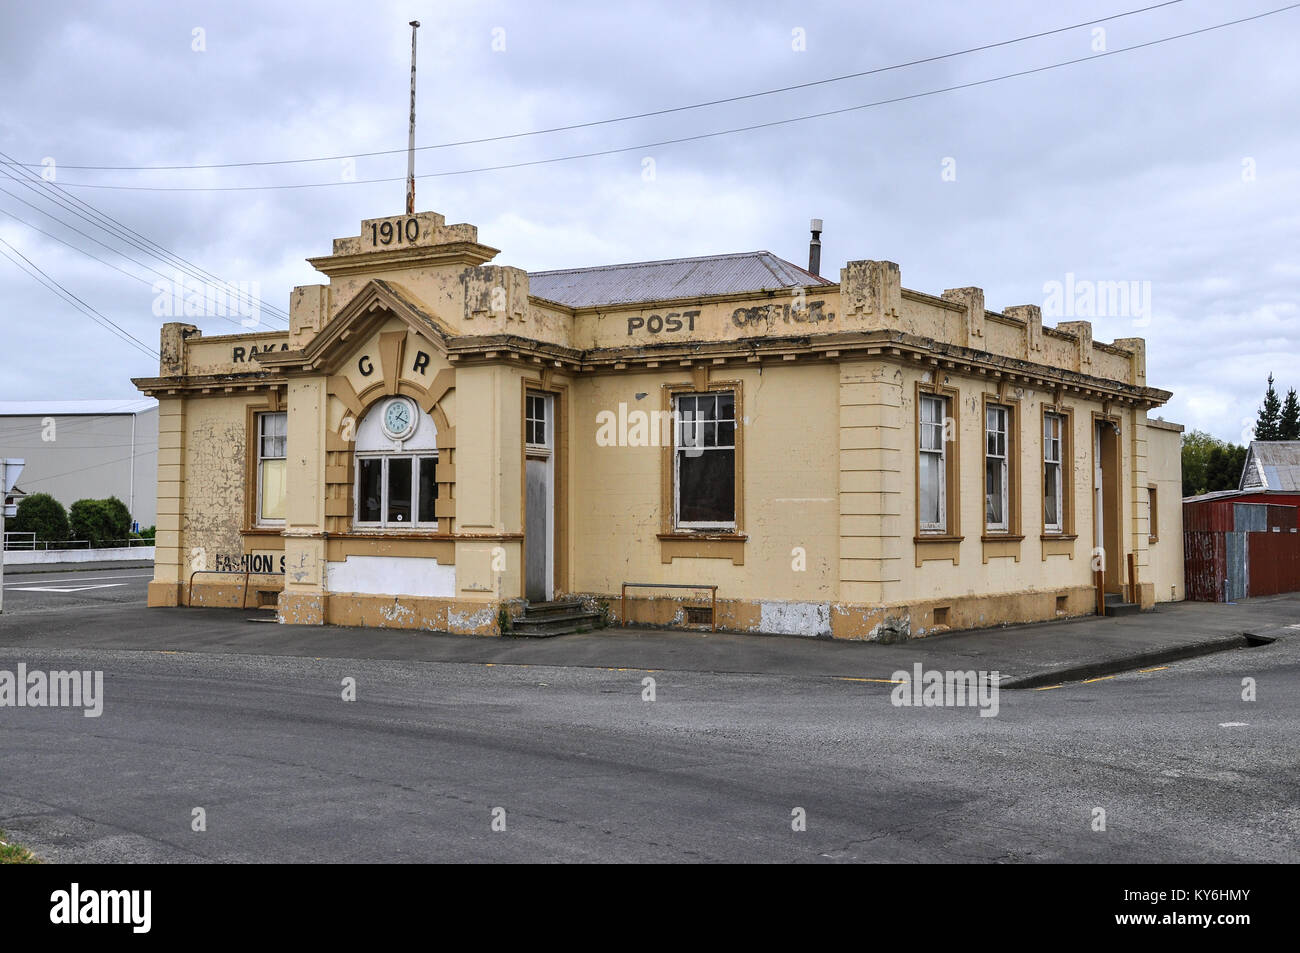 Old Post Office Rakaia South Island New Zealand. Dated 1910. Decaying.  Space for copy - Stock Image